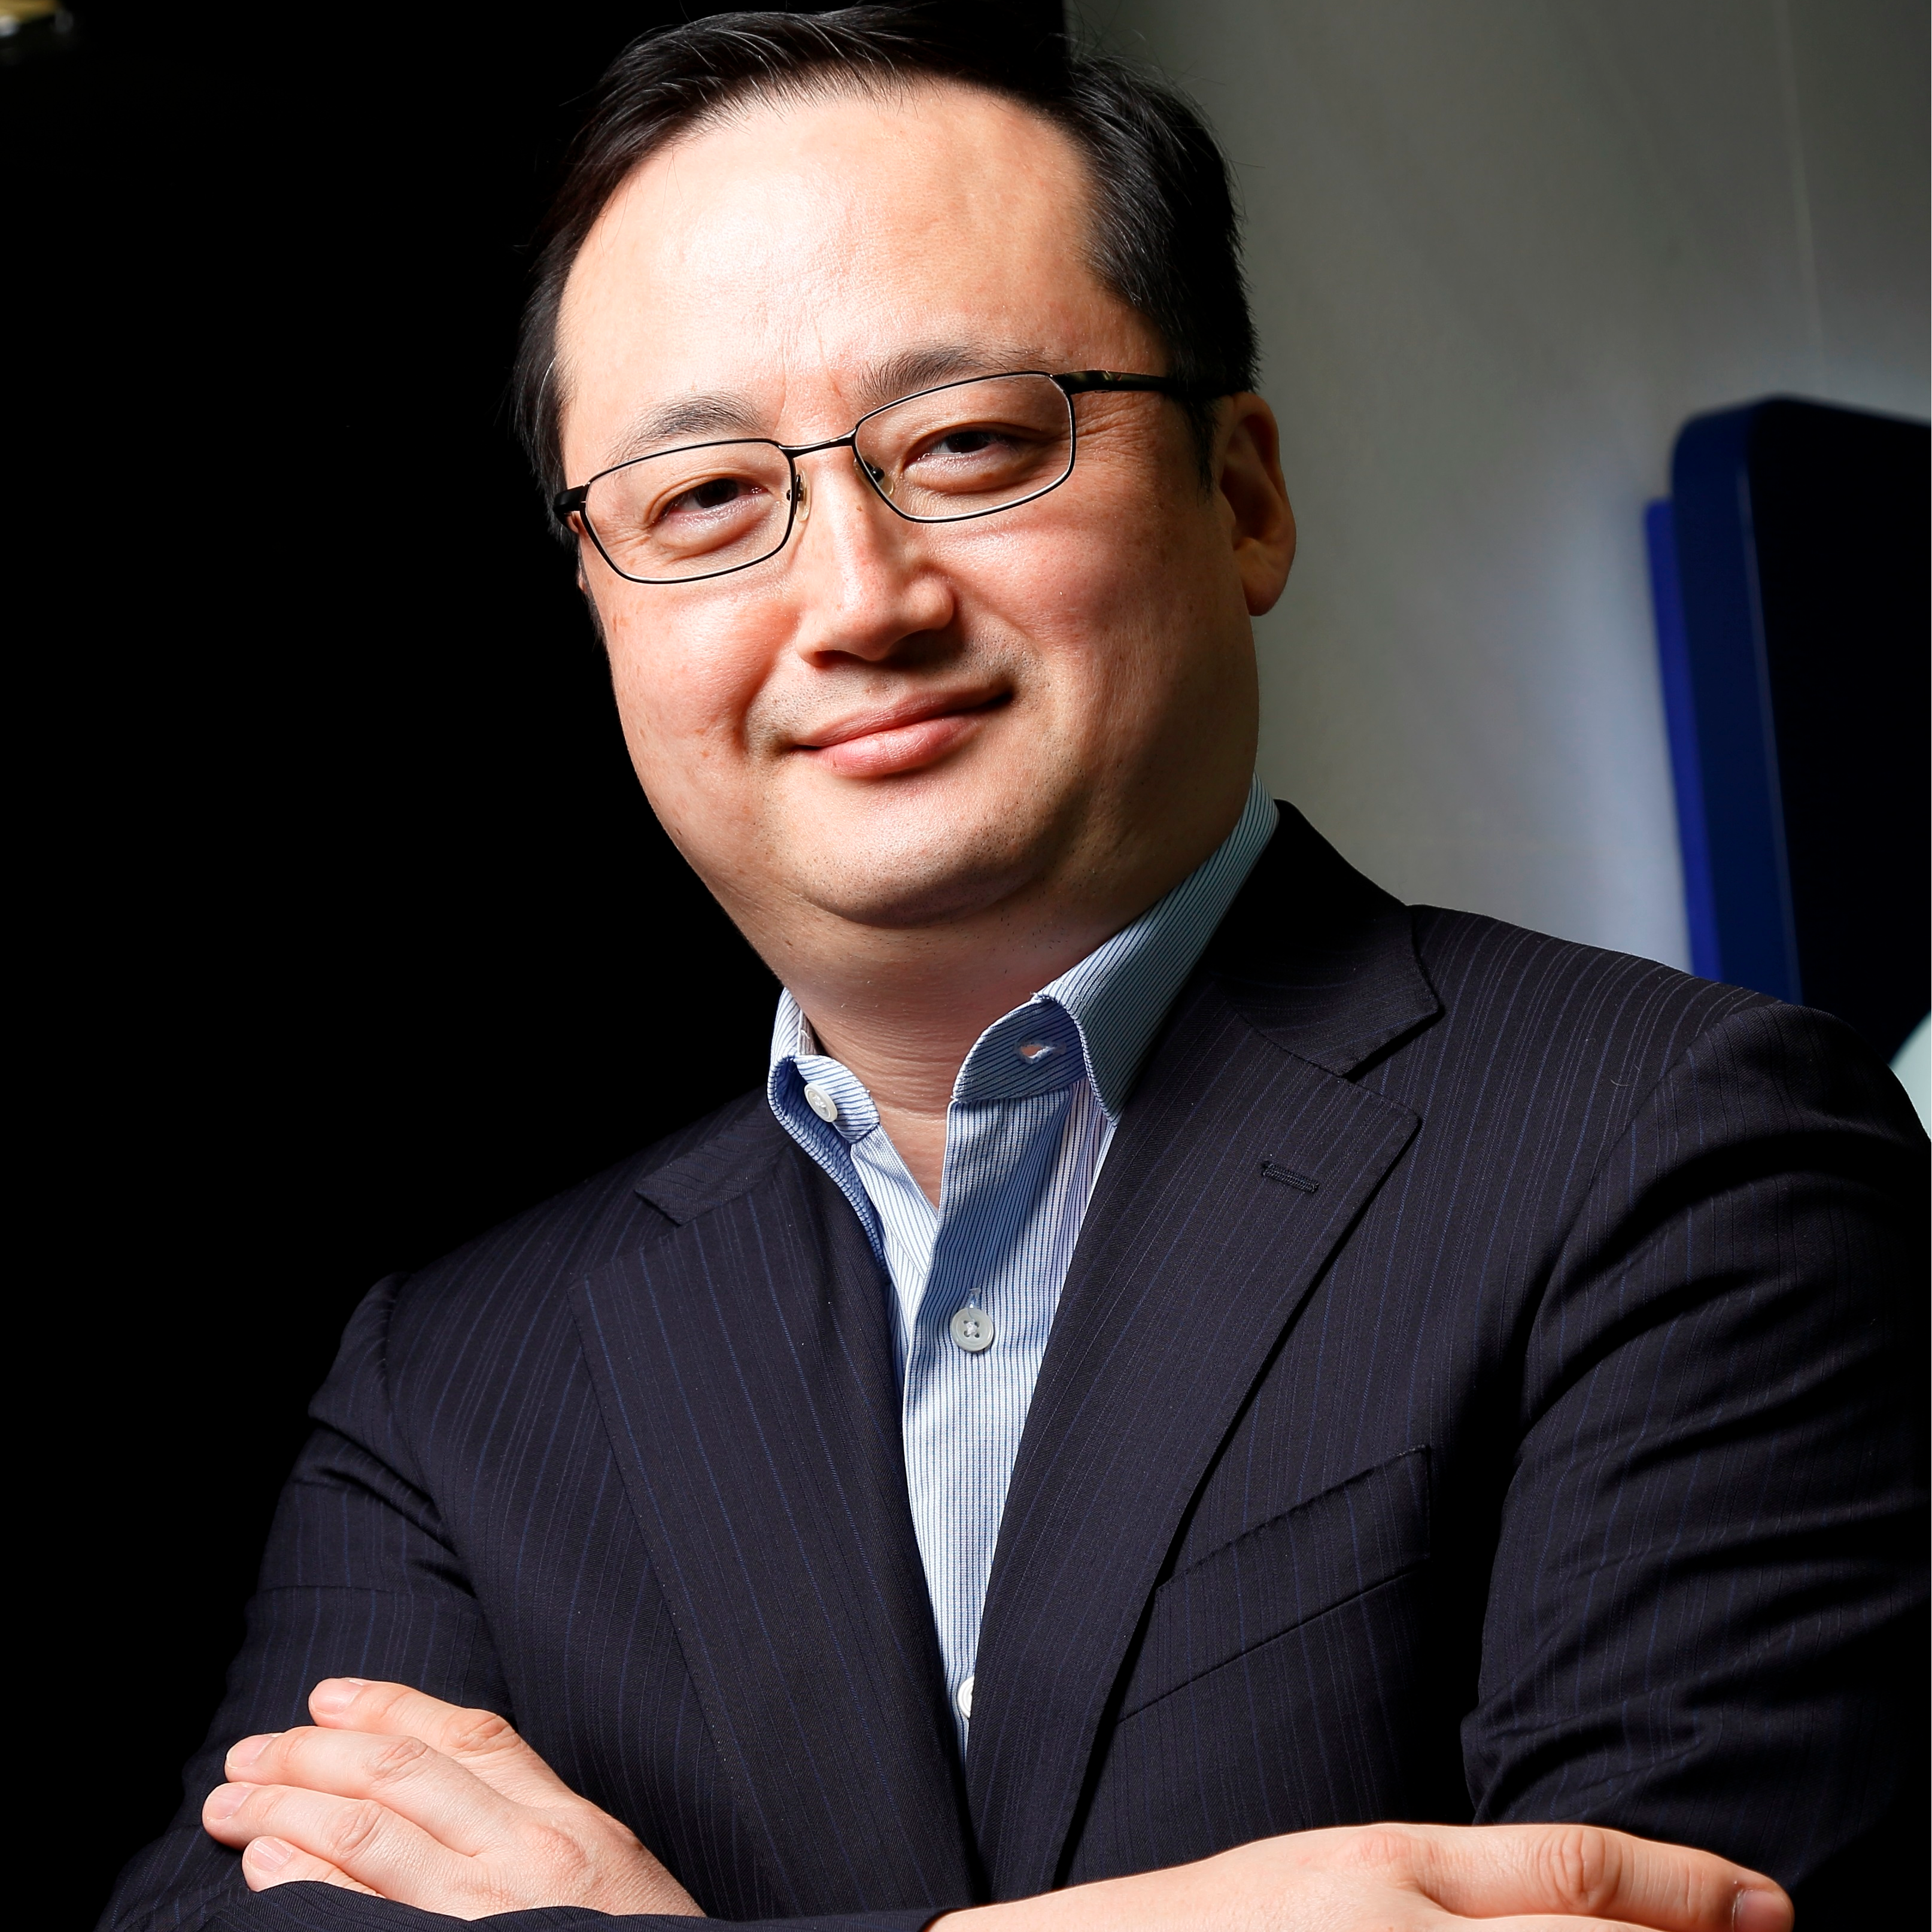 Mr Thomas Choi, Executive Chairman at Airspace Internet Exchange